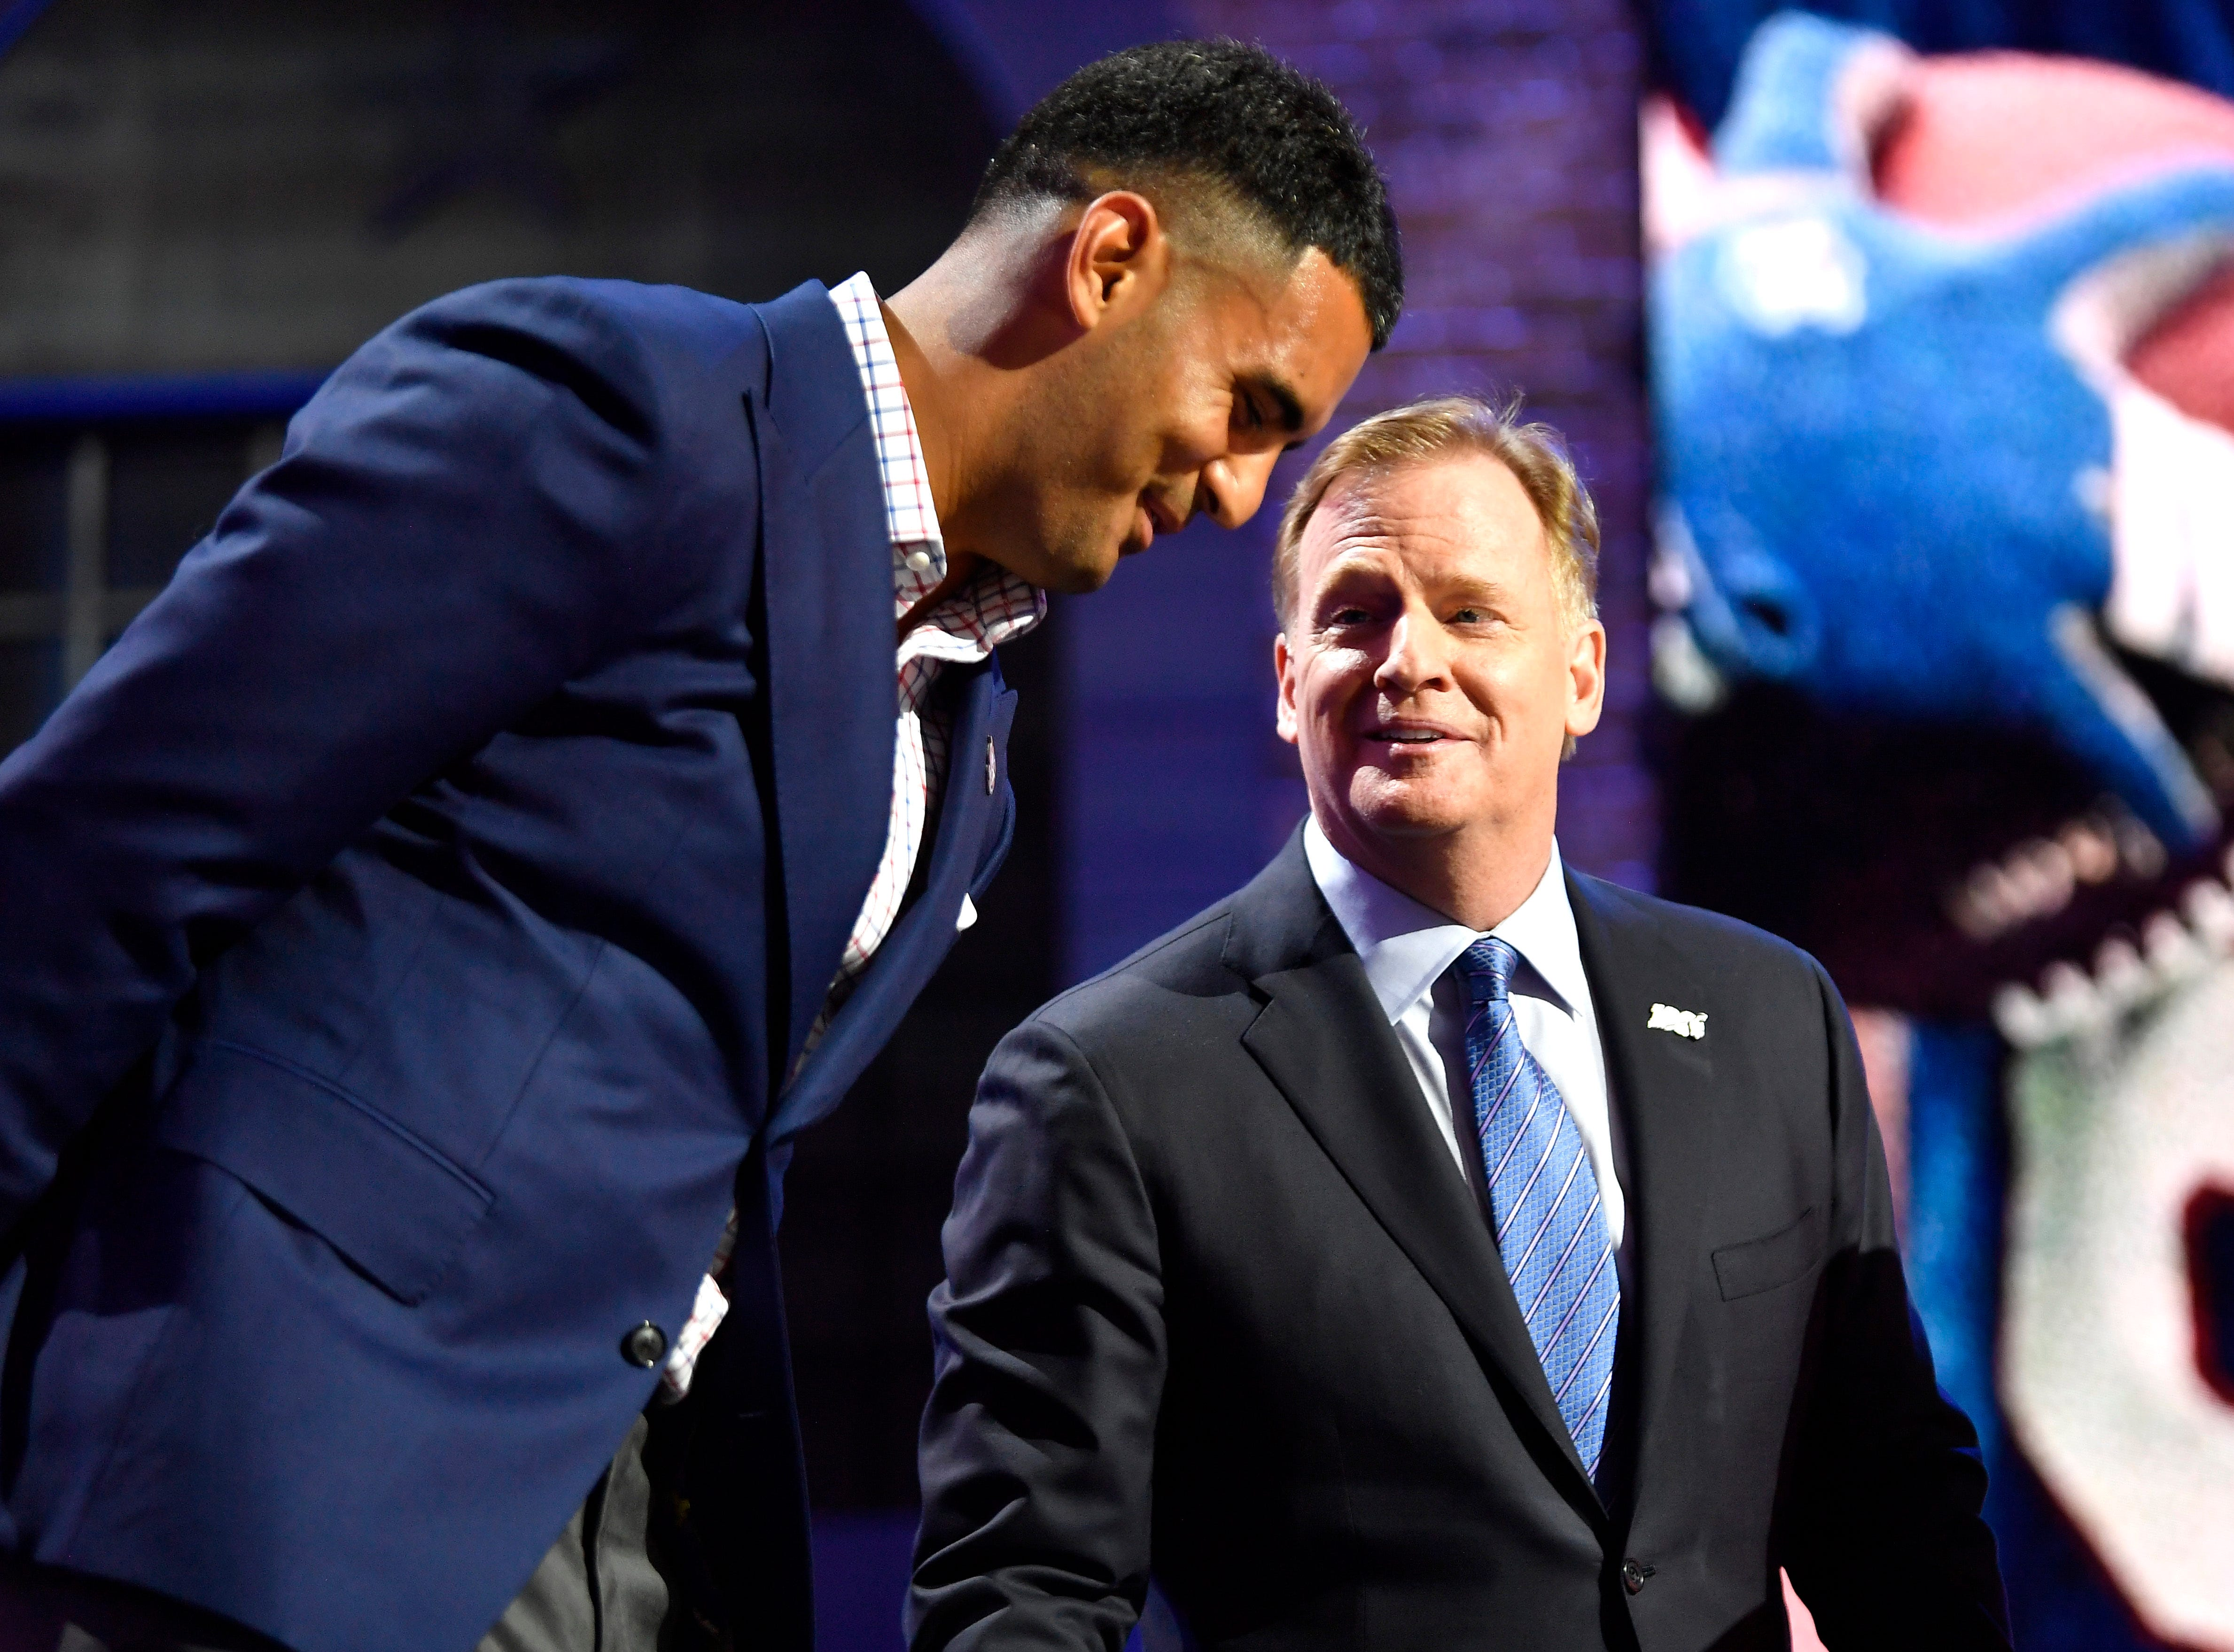 Titans quarterback Marcus Mariota stands on stage with NFL Commissioner Roger Goodell during the first round of the NFL Draft Thursday, April 25, 2019, in Nashville, Tenn.